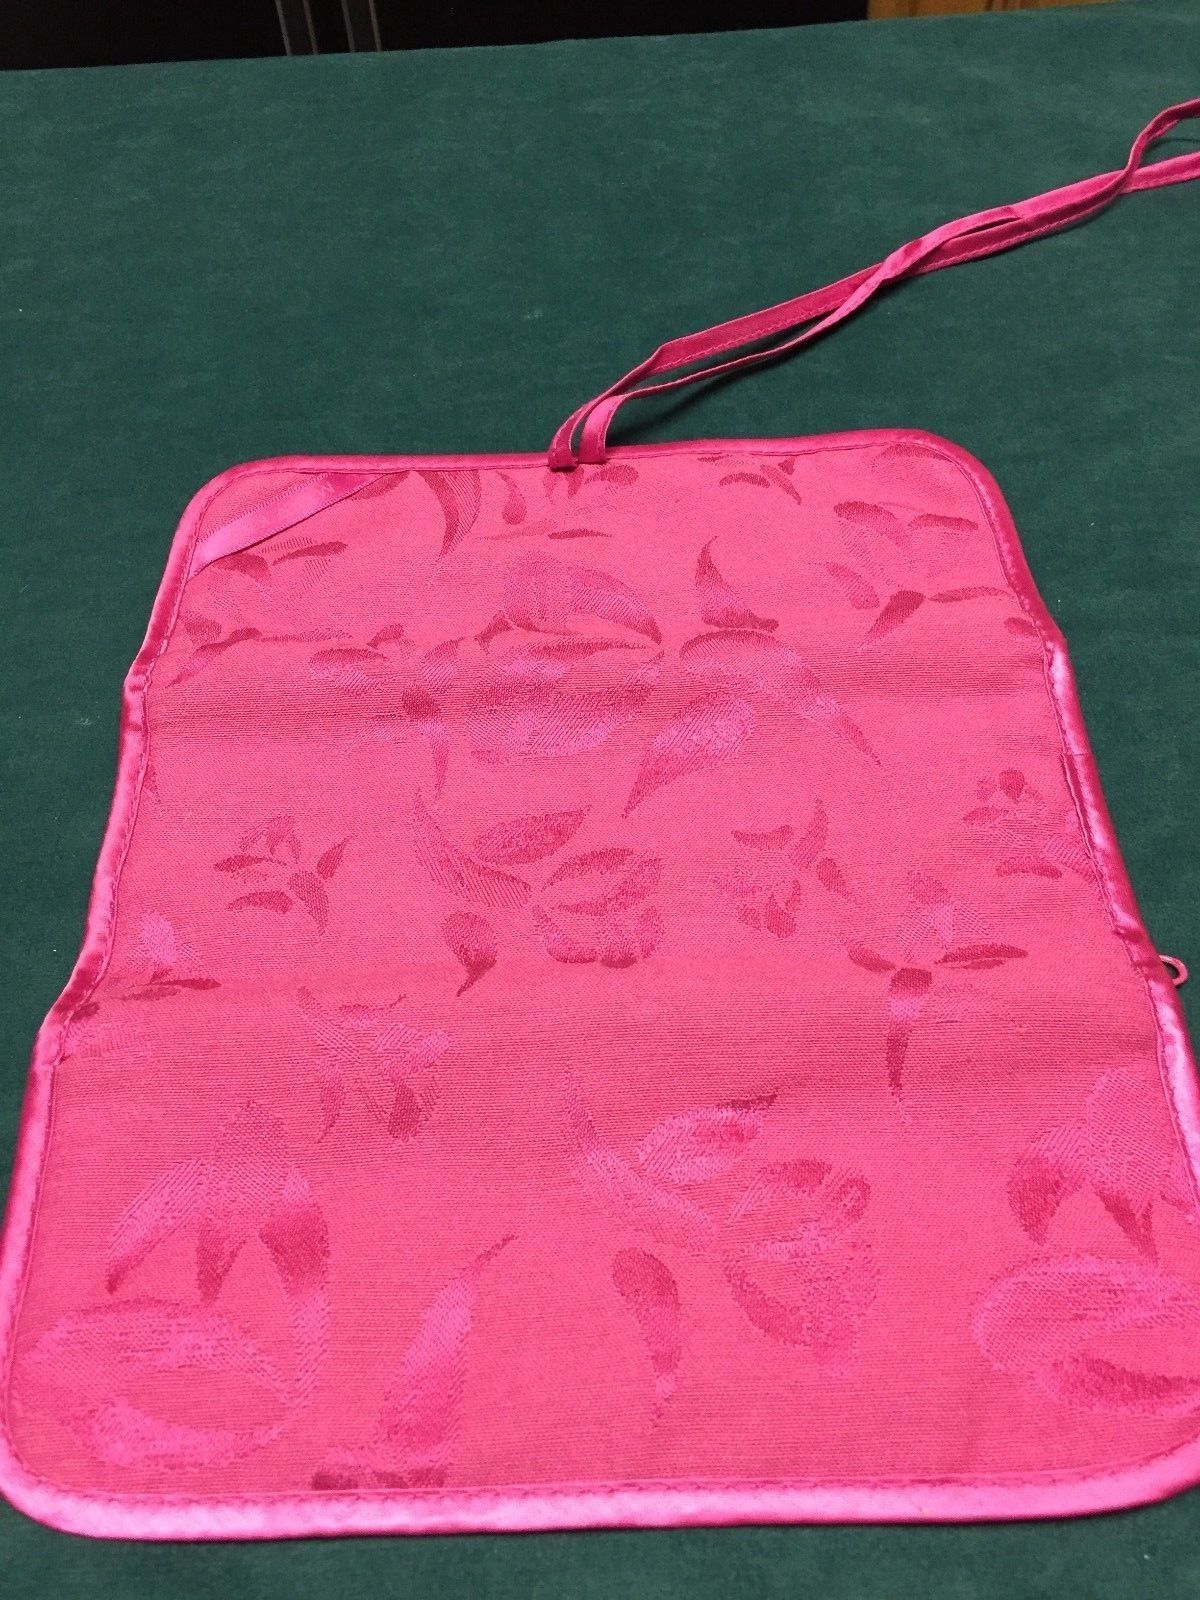 Vintage Mary Kay Makeup Roll Up Travel Bag or Jewelry Case Hot Pink